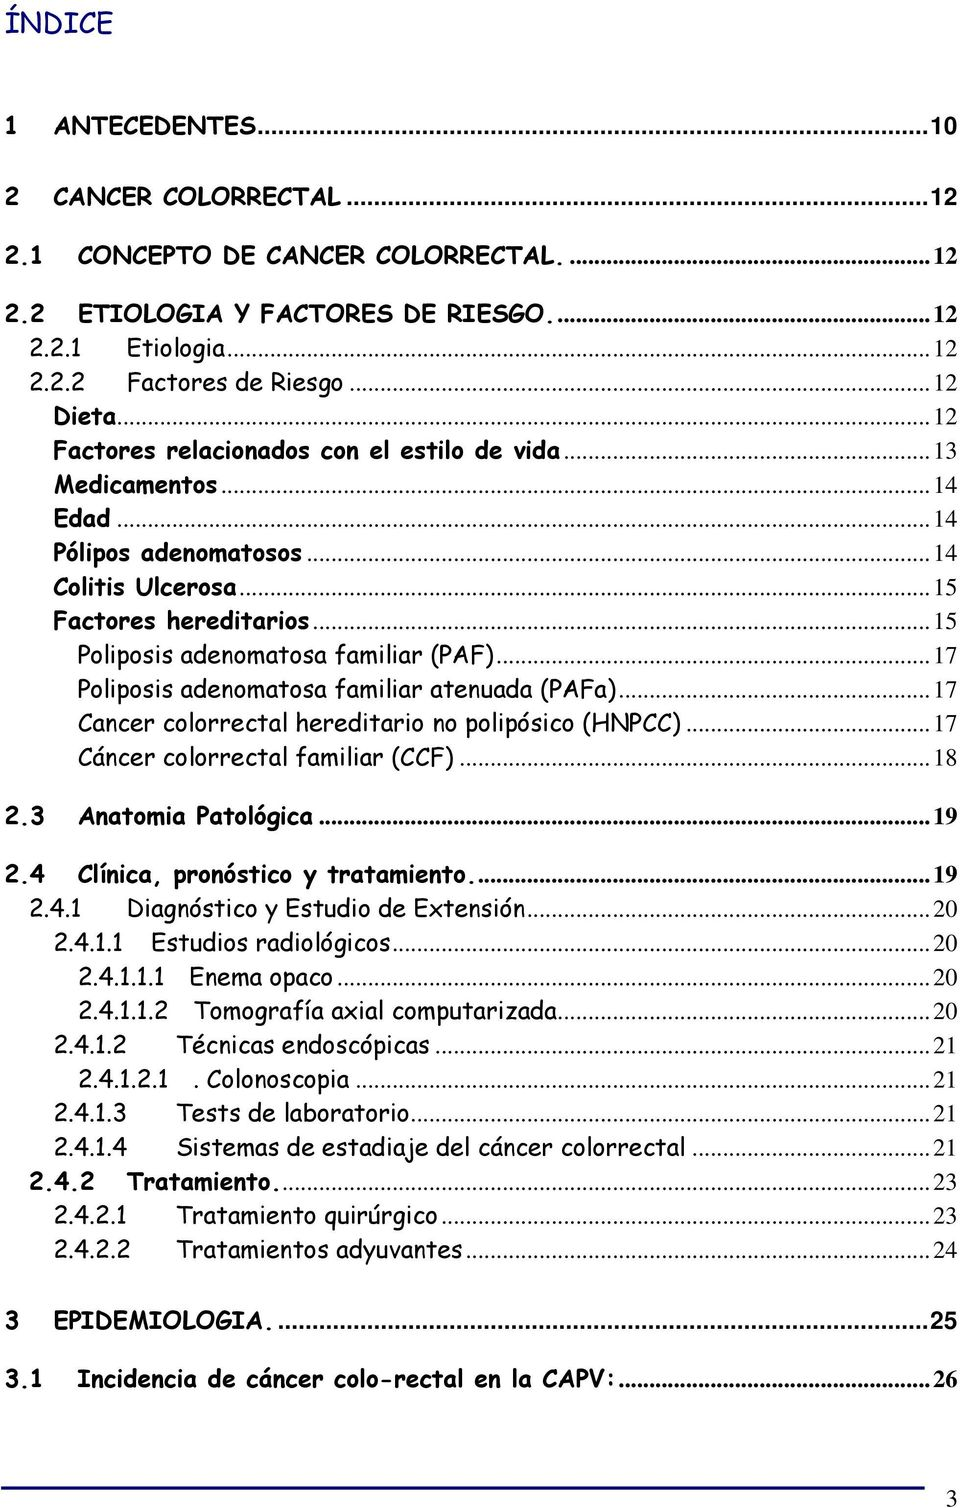 ..17 Poliposis adenomatosa familiar atenuada (PAFa)...17 Cancer colorrectal hereditario no polipósico (HNPCC)...17 Cáncer colorrectal familiar (CCF)...18 2.3 Anatomia Patológica...19 2.